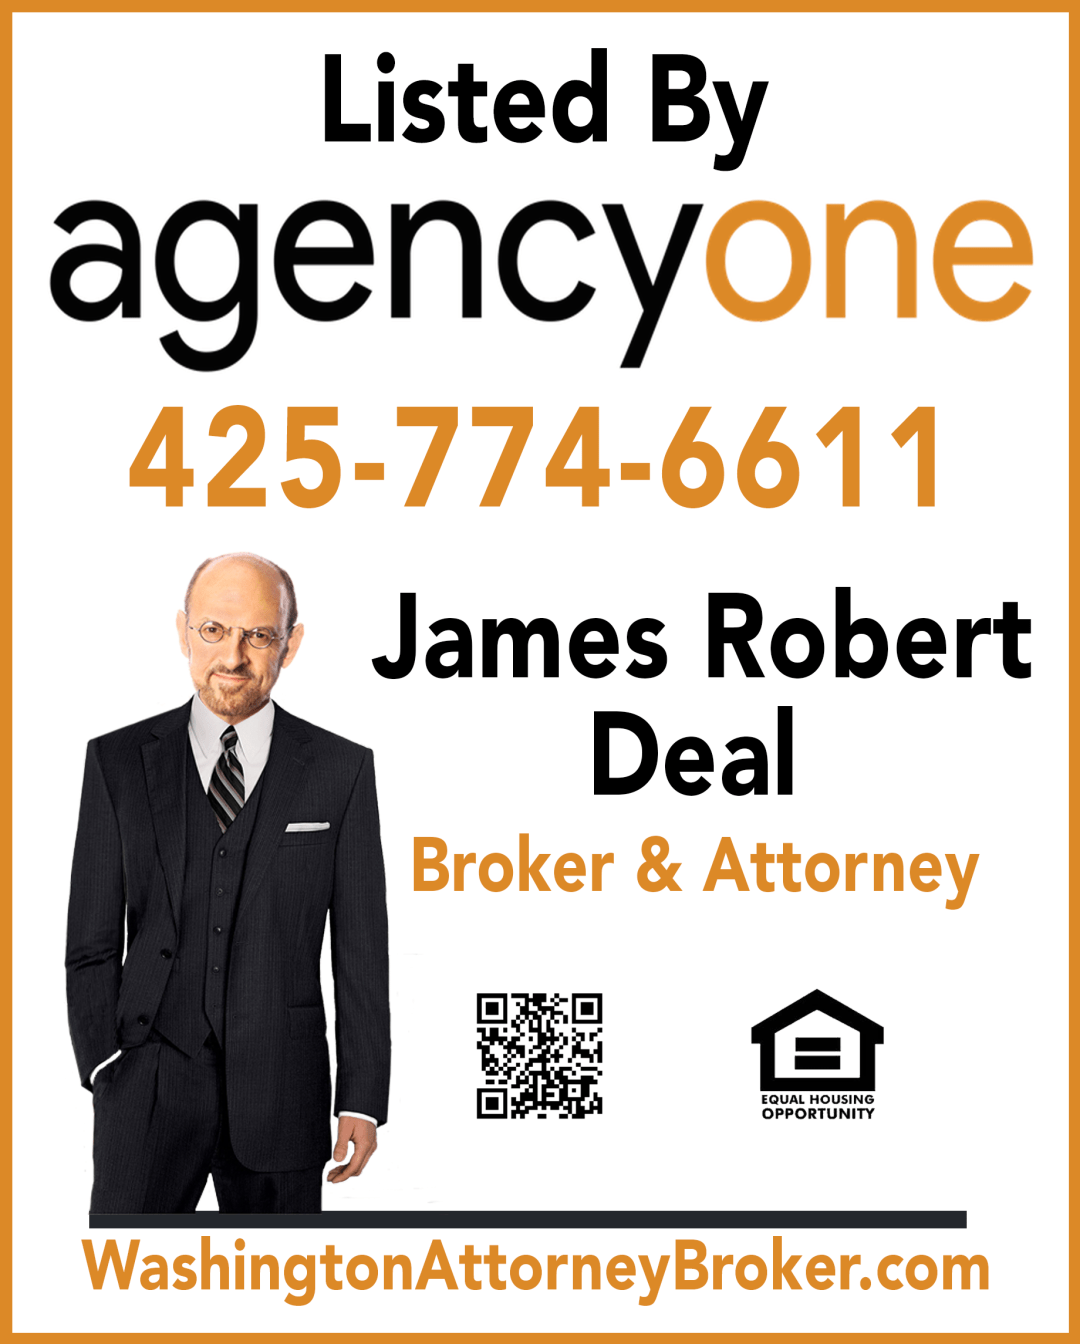 Washington Attorney Broker